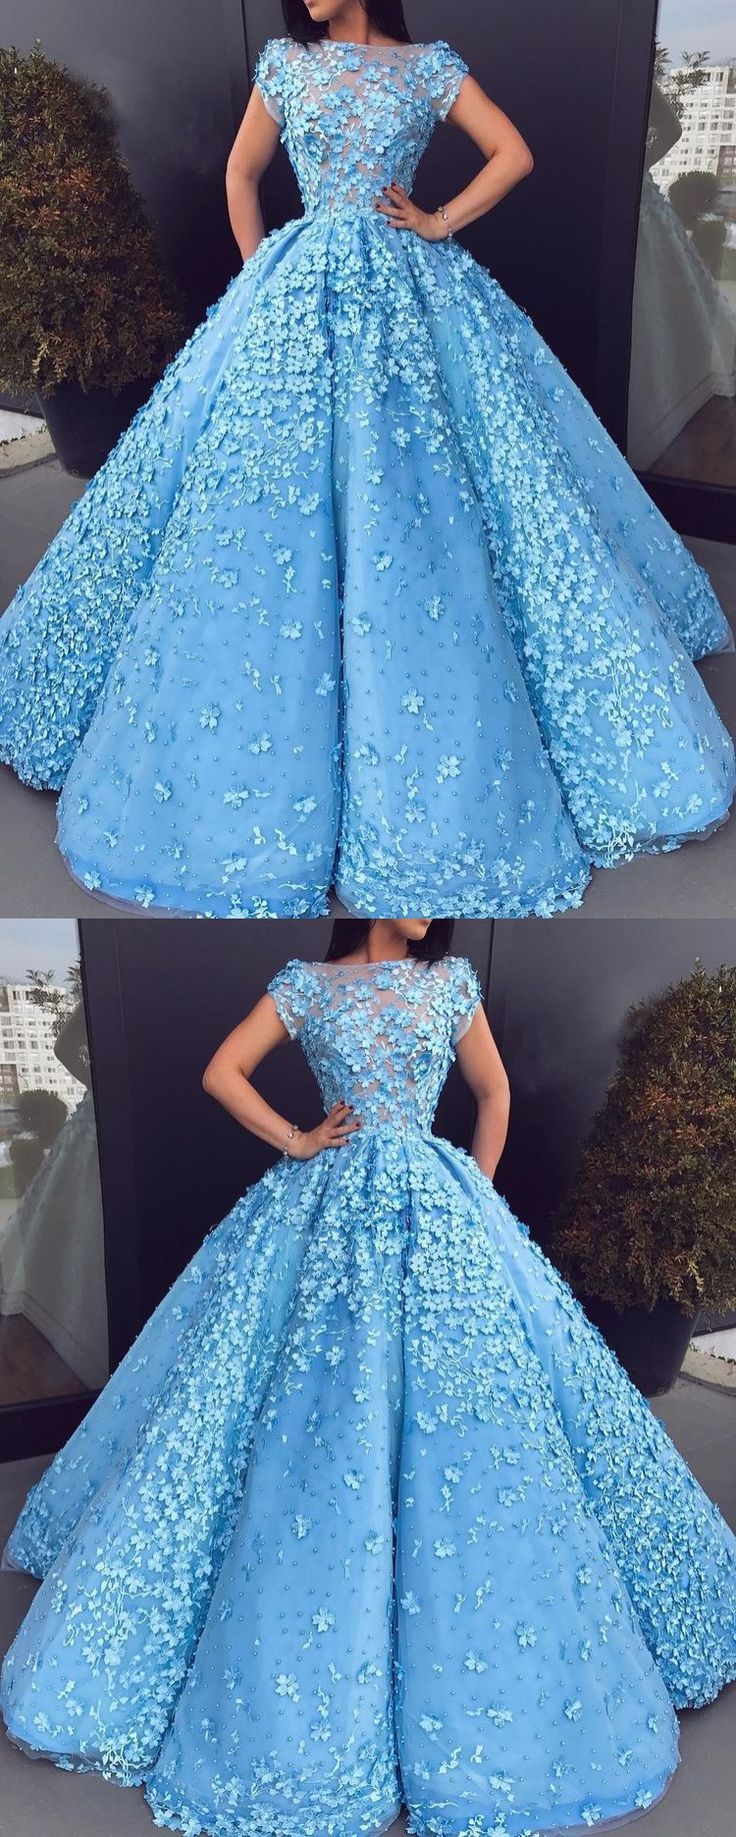 beautiful prom dresses blue floral lace bateau long ball